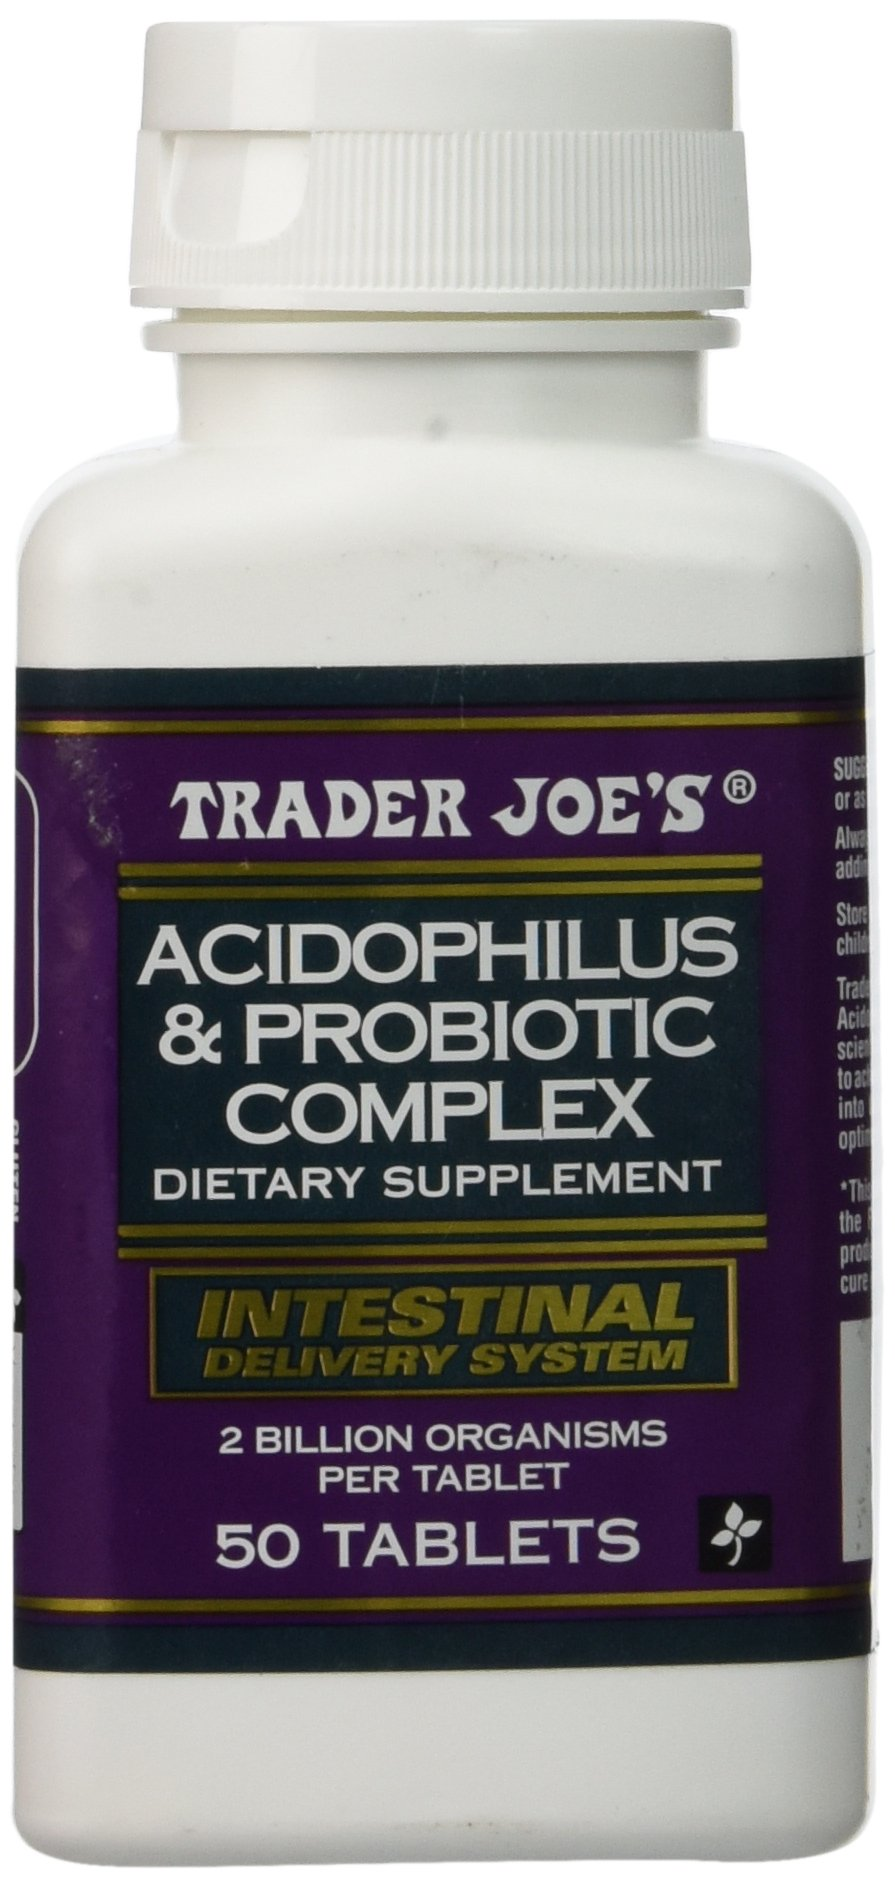 Amazon.com: Trader Joes Acidophilus and Probiotic Complex, 50 Tablets, 2  Billion Organisms Per Tablet: Health & Personal Care